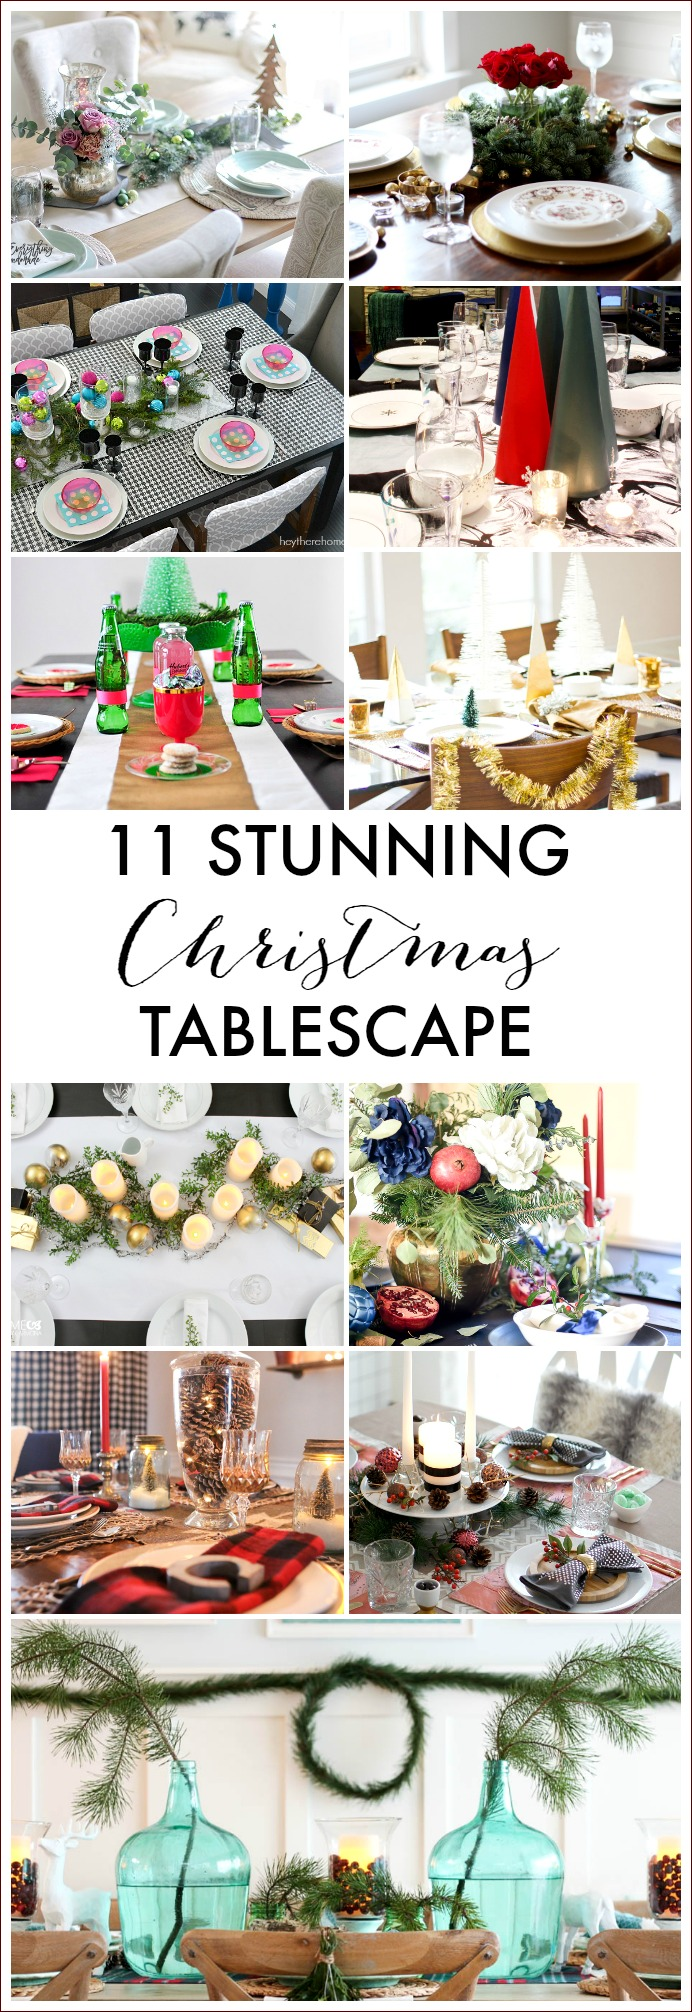 stunning Christmas tablescapes